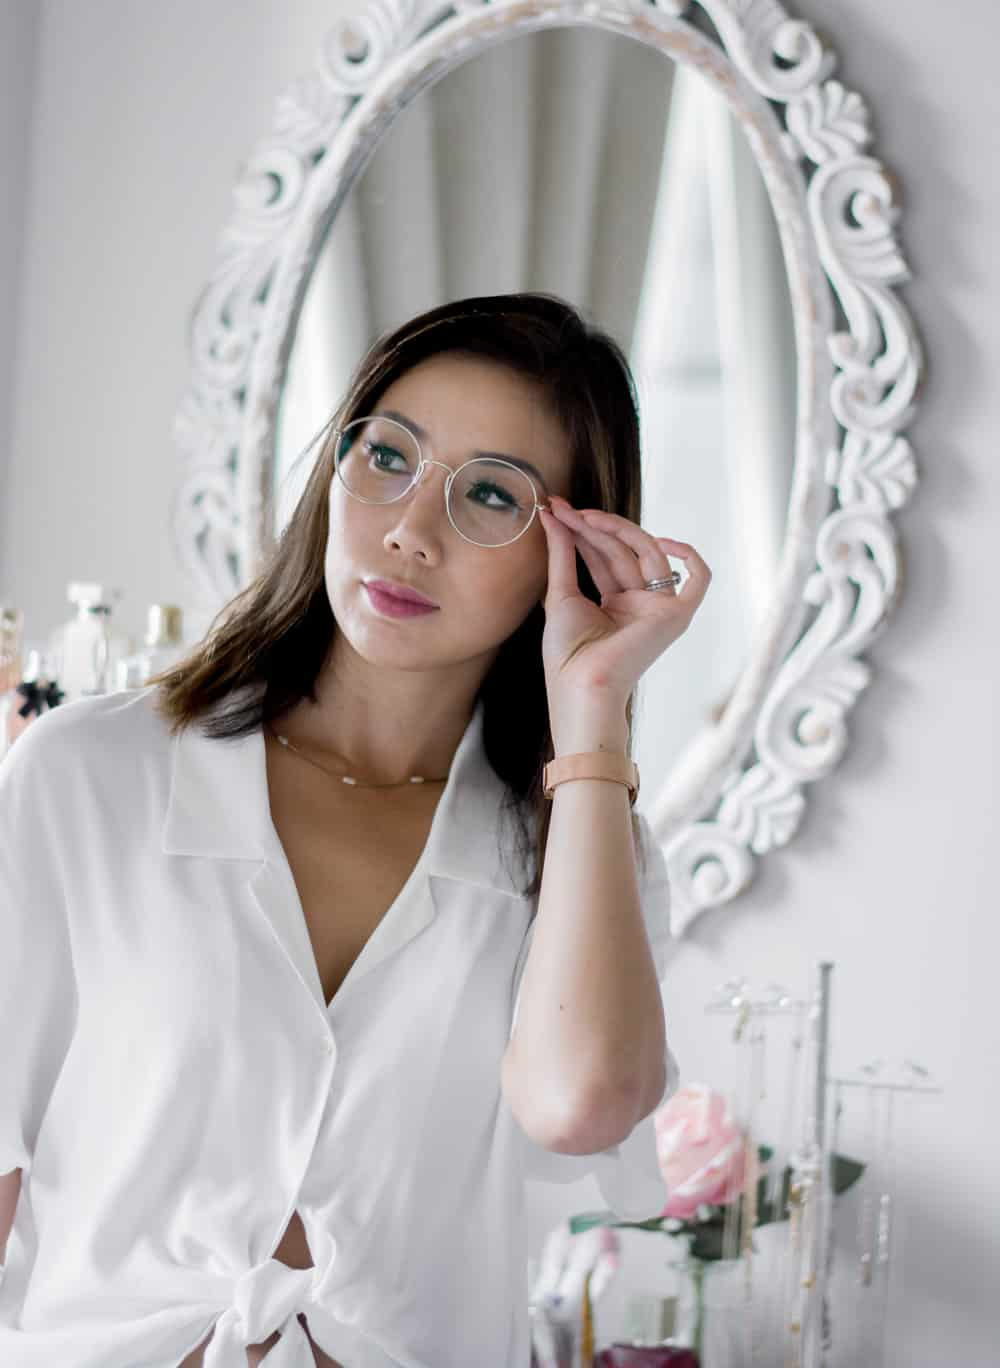 Buying glasses online - A review for Clearly.ca